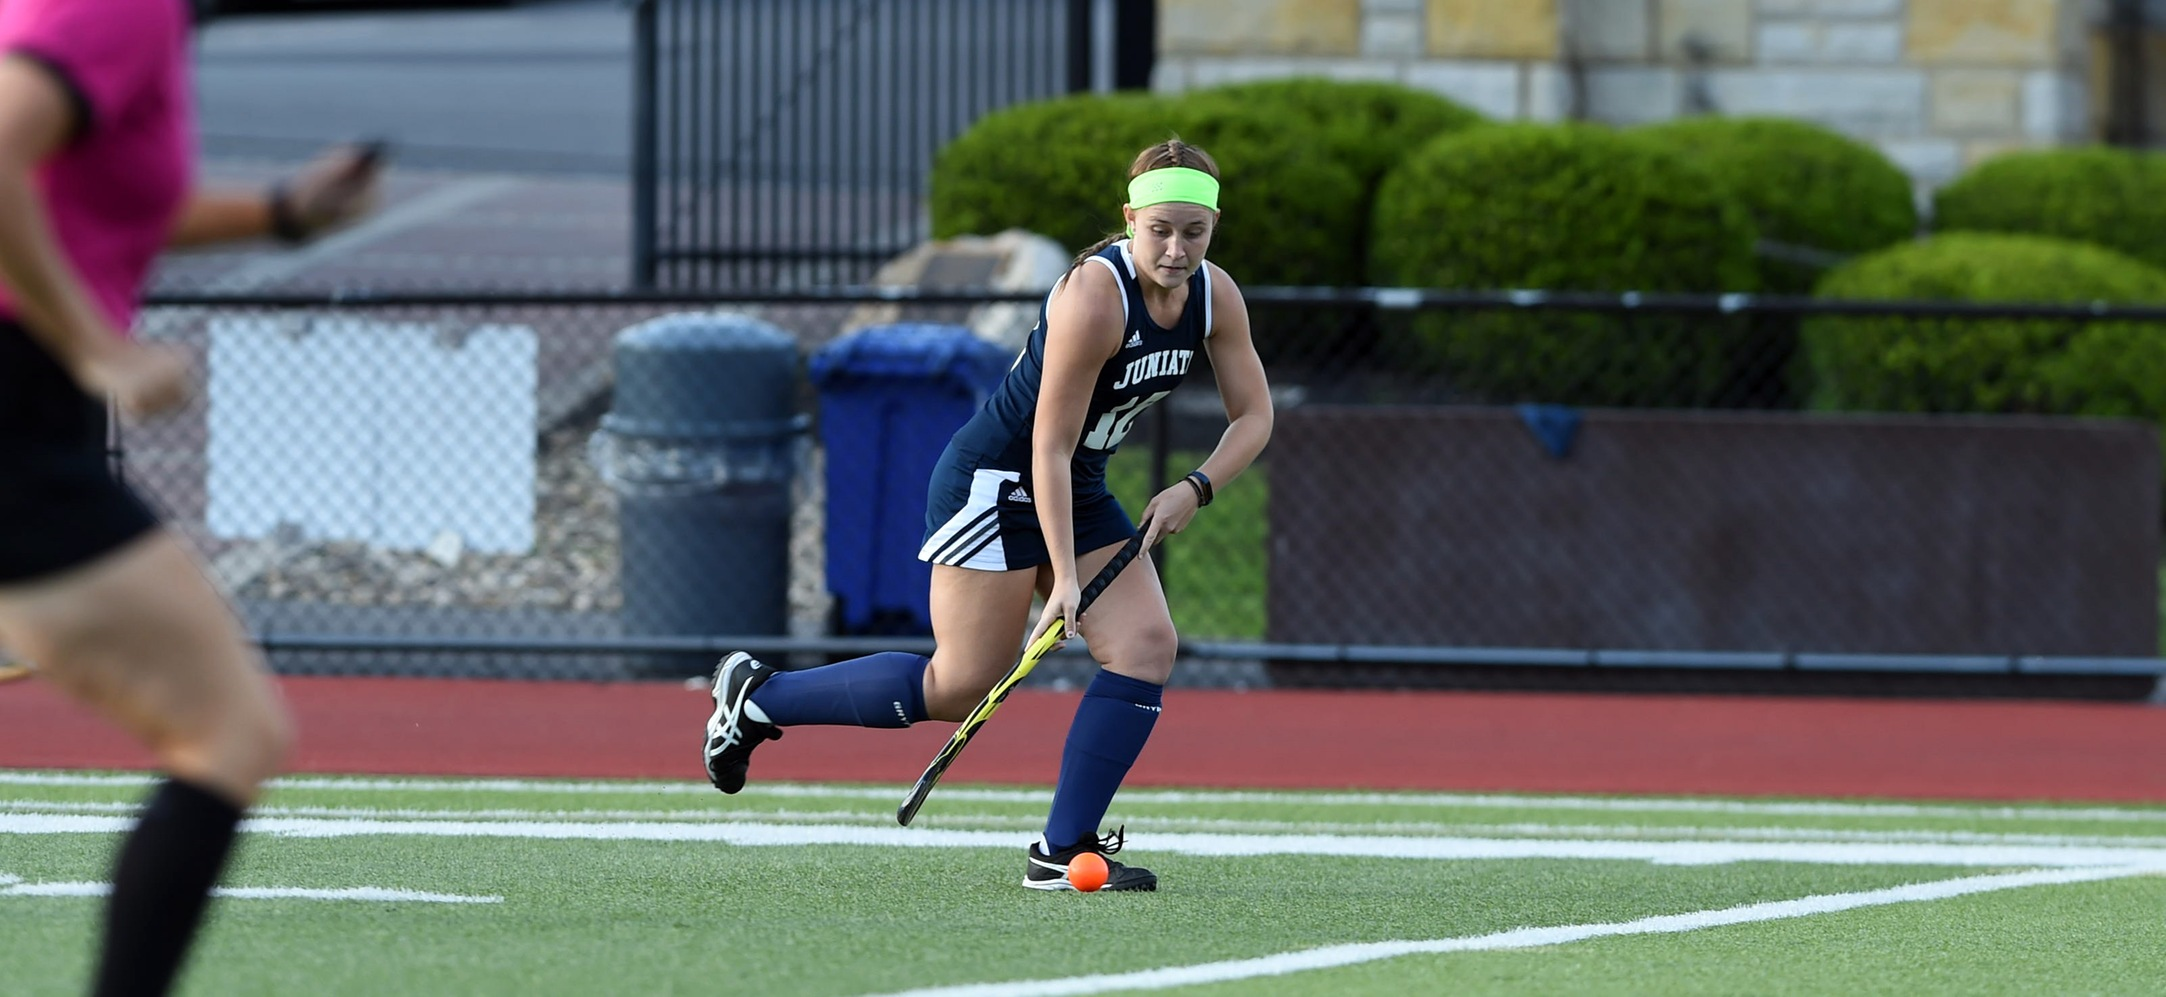 Olivia Marker tallied her sixth goal of the season in the Eagles win over No. 18, W&J.